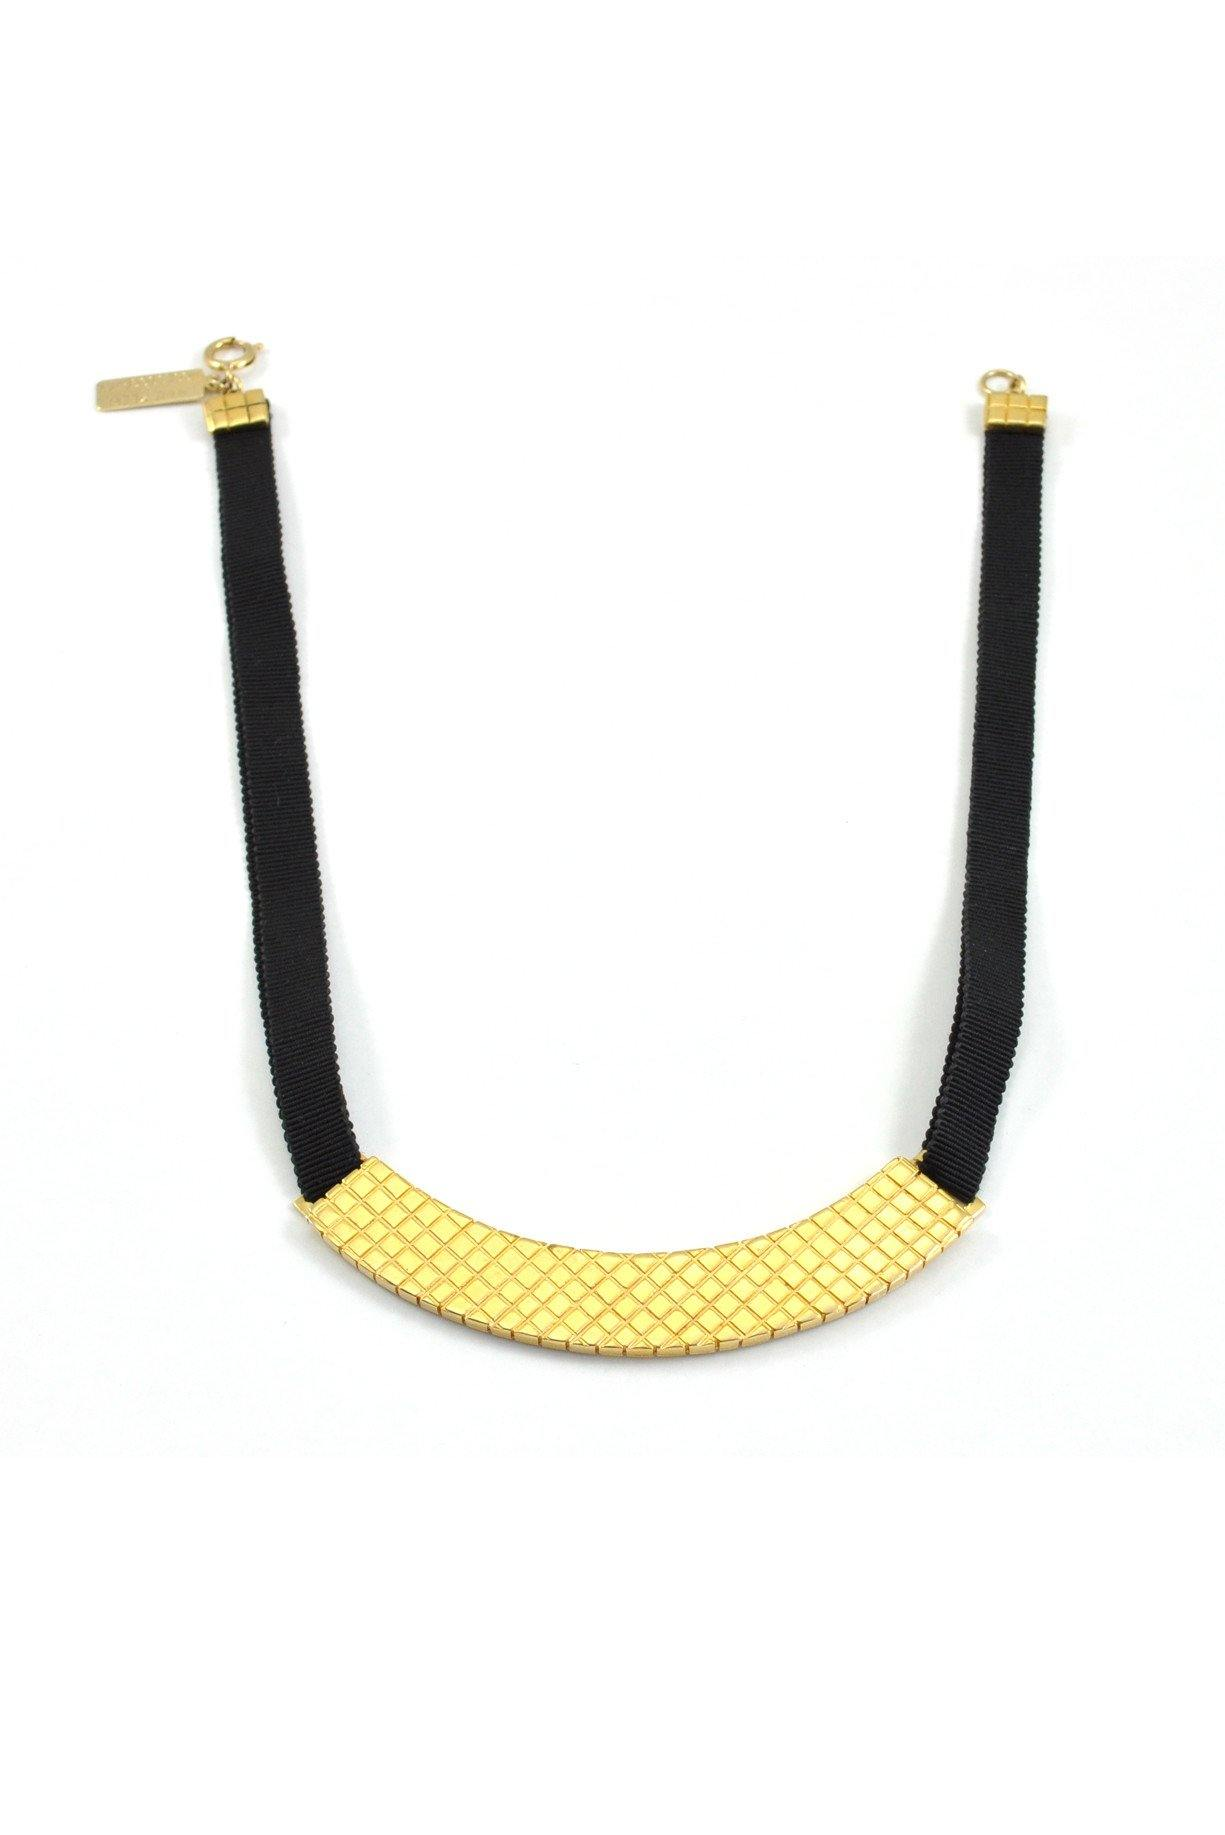 80's__Anne Klein__Black Bar Choker Necklace